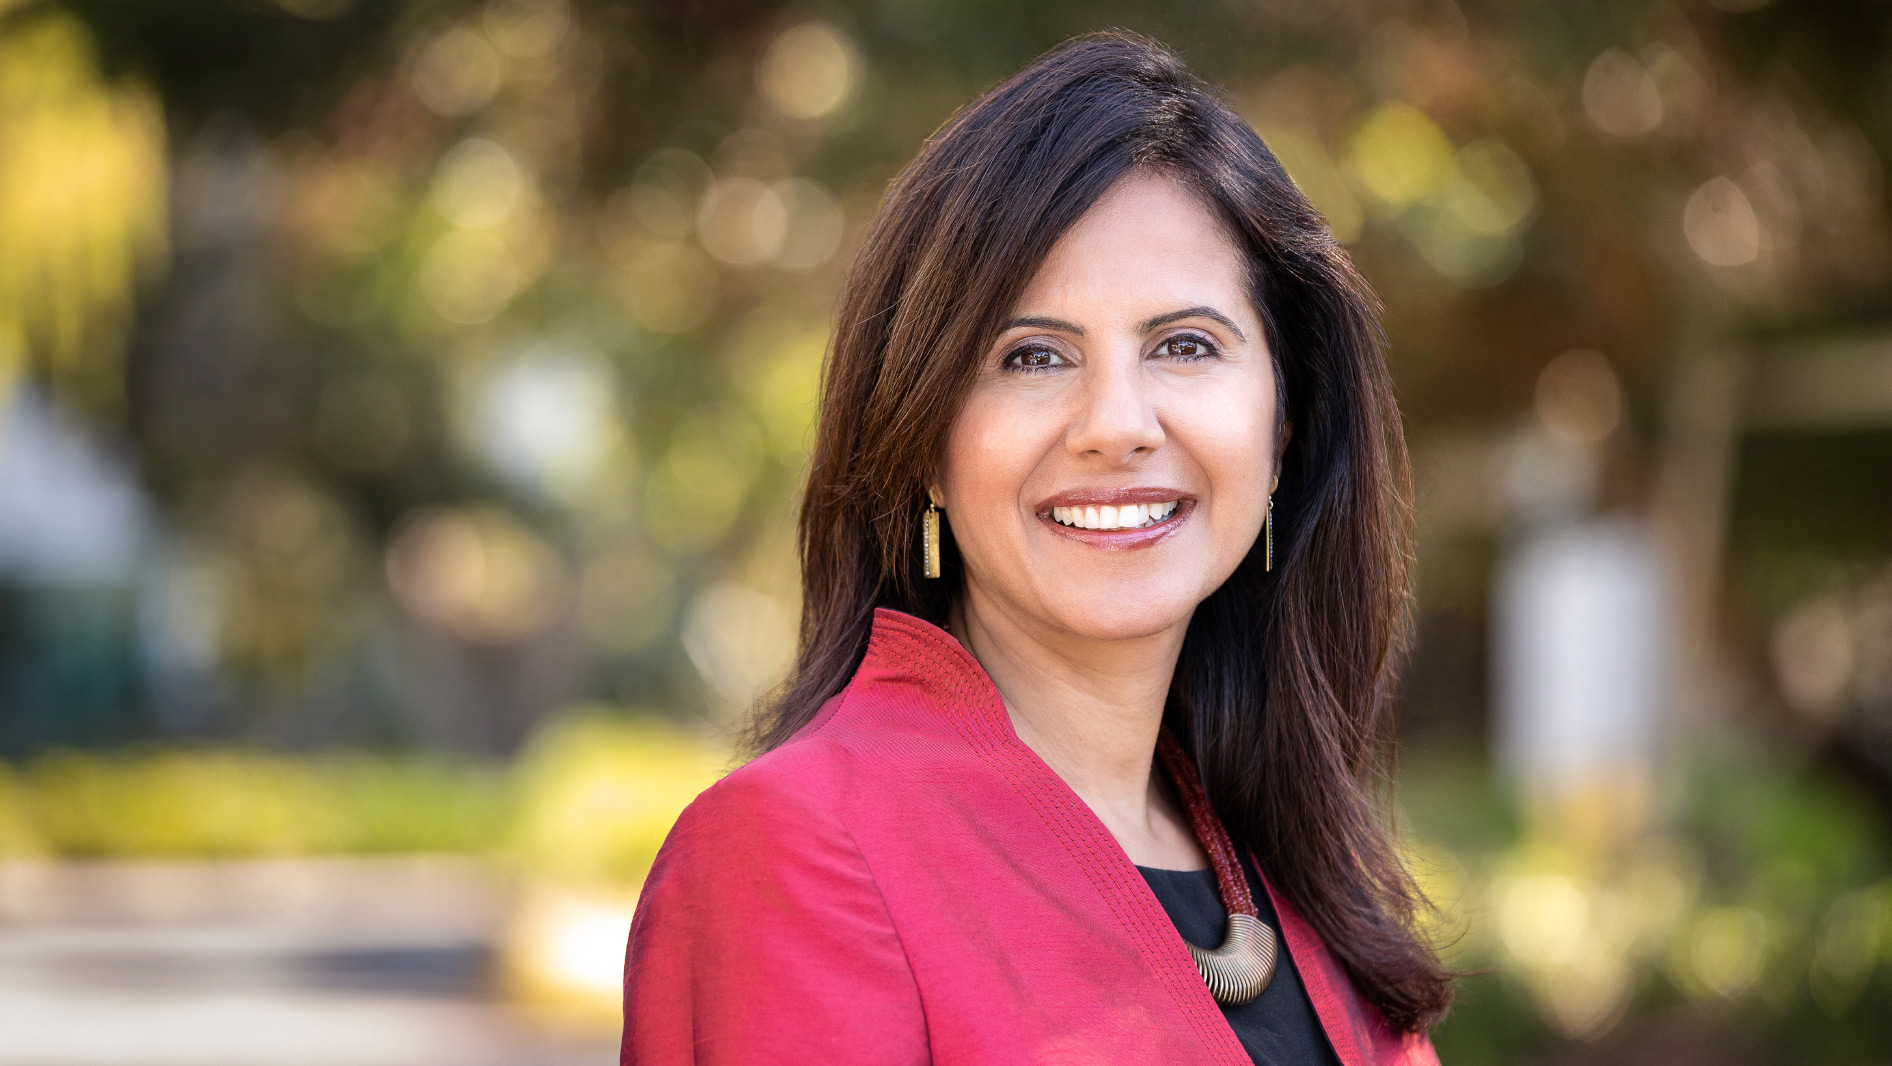 Jyoti Mehra, Executive Vice President, Human Resources